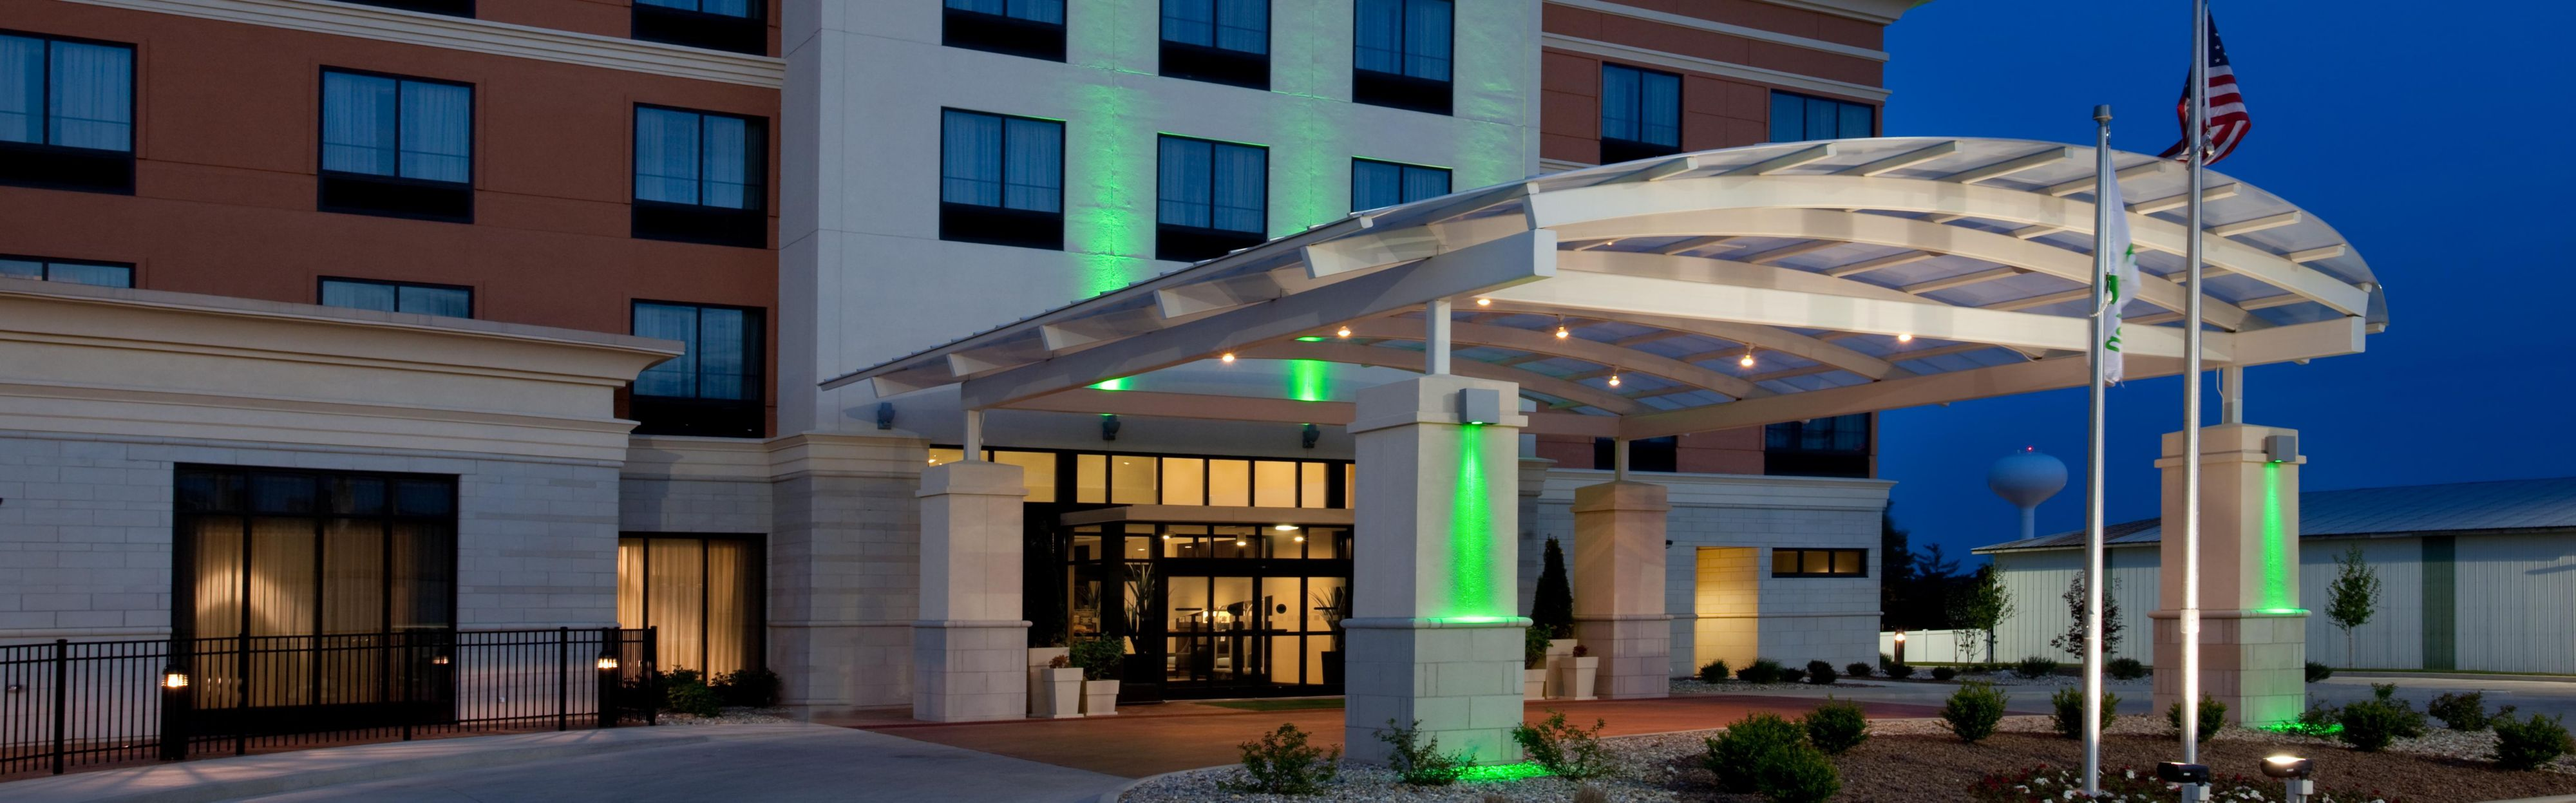 Holiday Inn St. Louis-Fairview Heights image 0